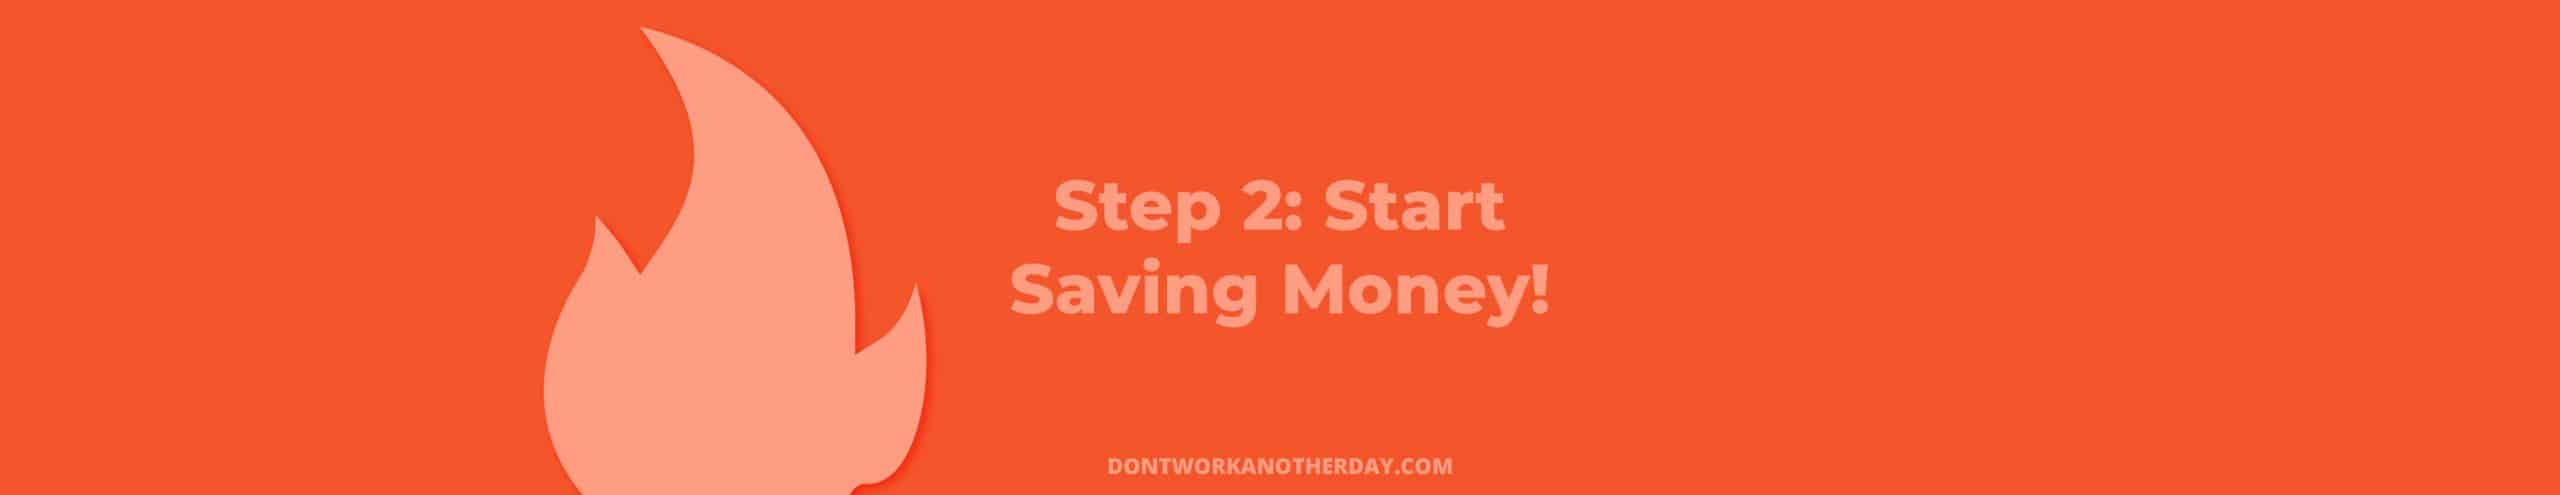 Financial Independence Retire Early Step 2